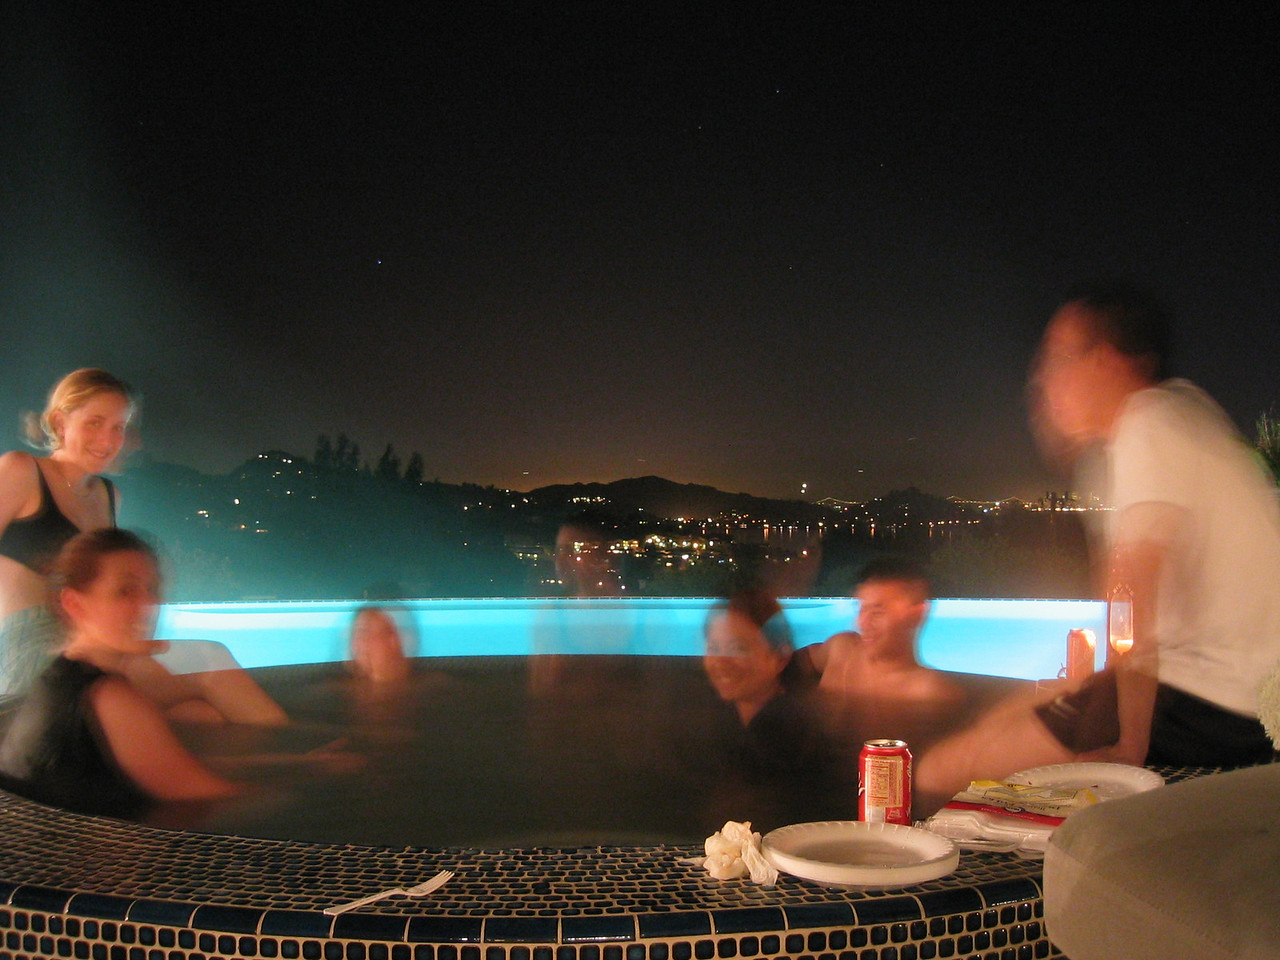 Slow shutter - Hot tub + view 2